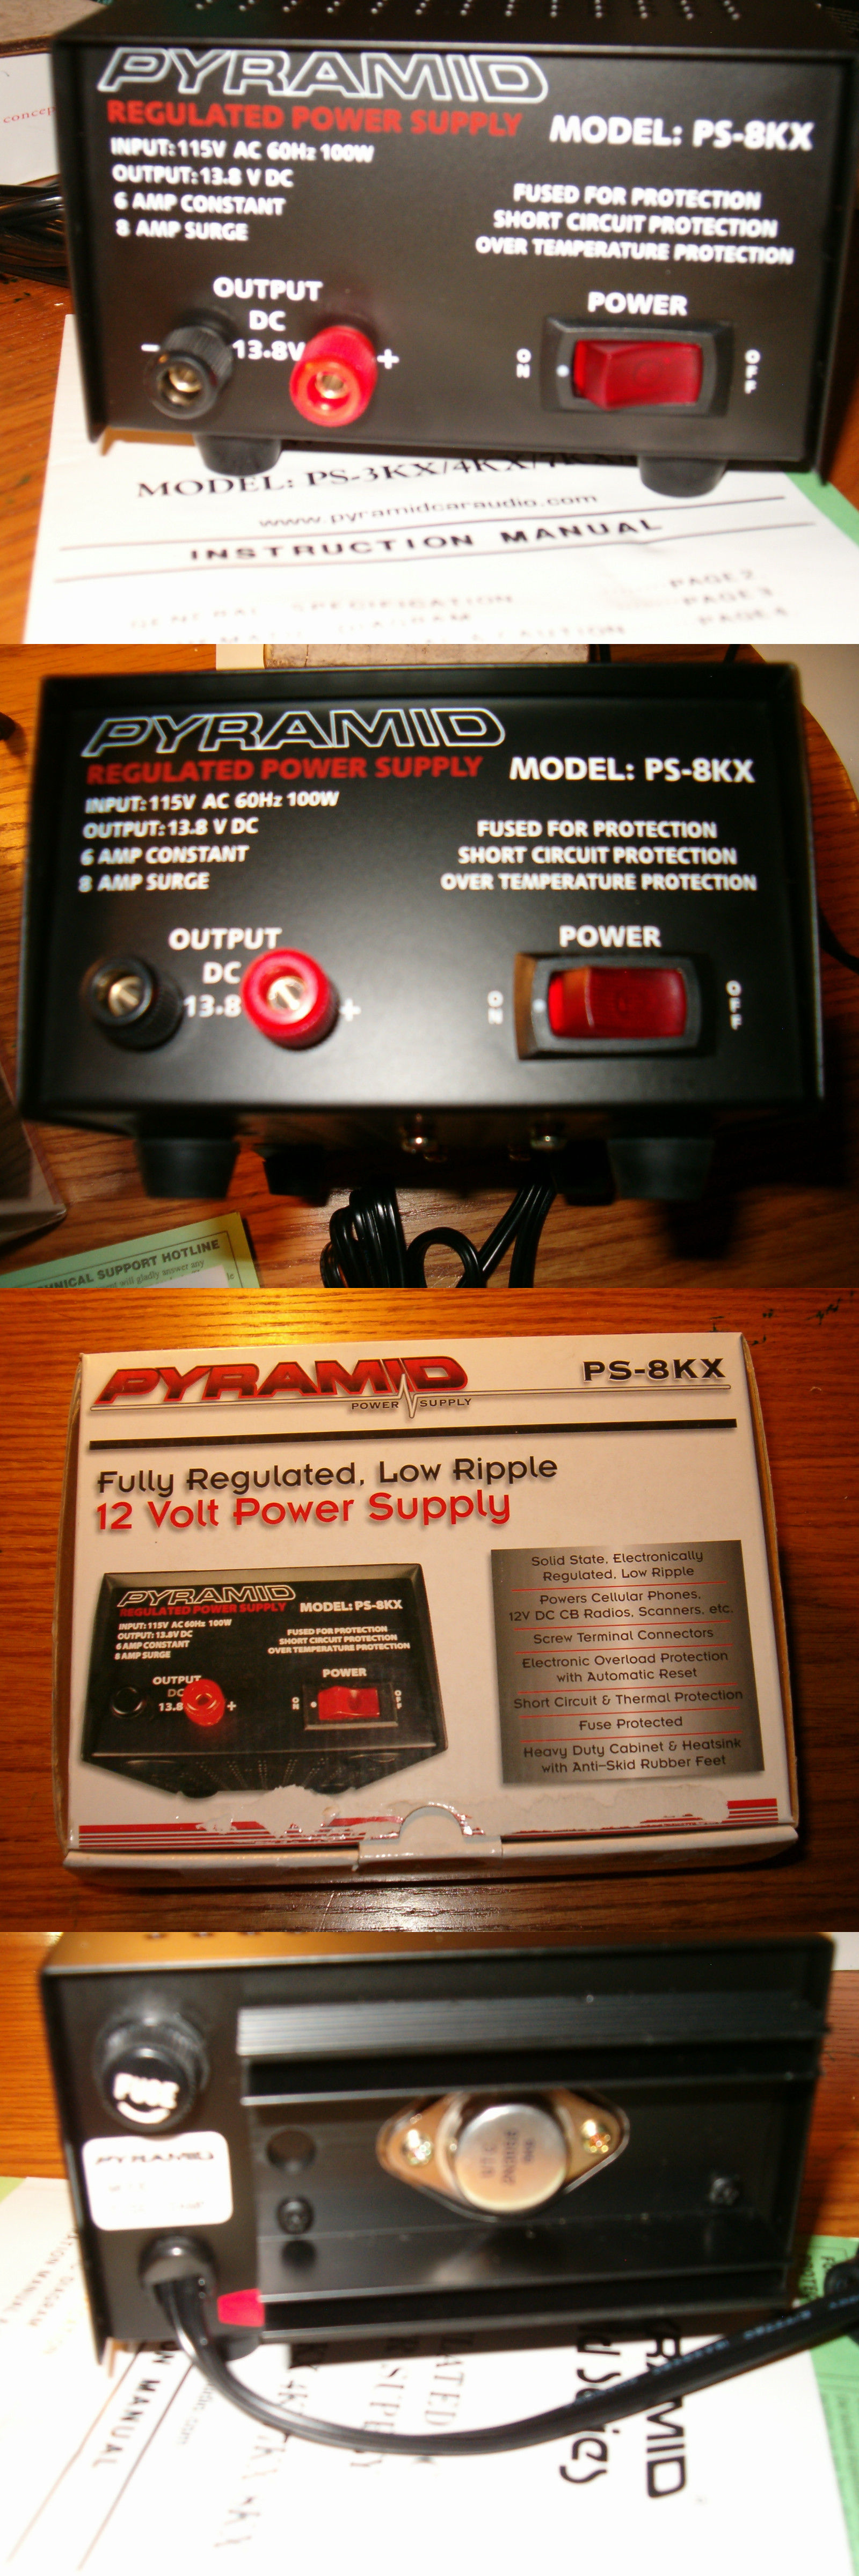 Multipurpose Ac To Dc Adapters Pyramid Ps 8kx 12 Volt Power Supply Regulated Fully